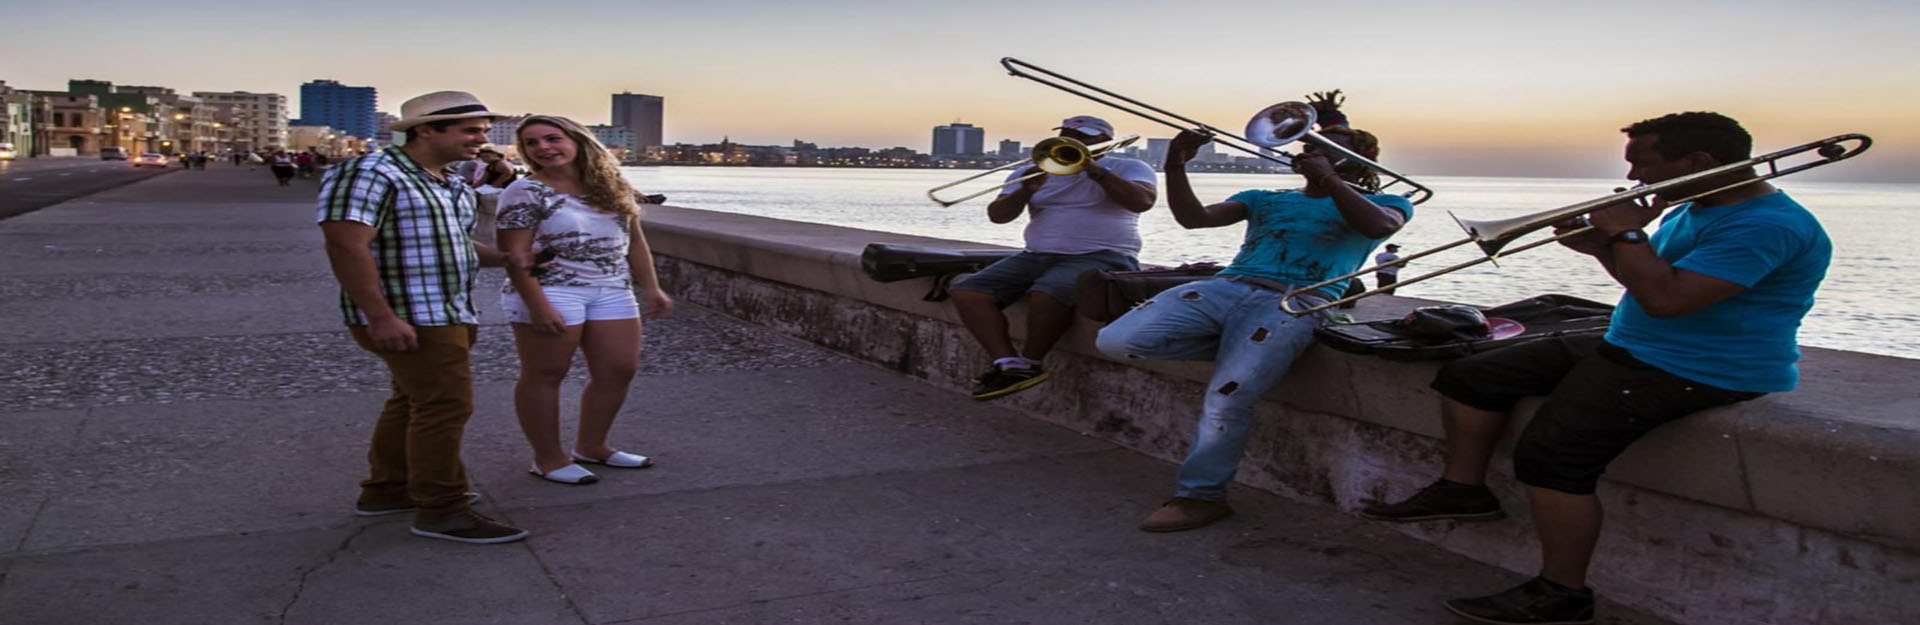 Traditional Cuban music on the Malecón of Havana, Cuba Travel